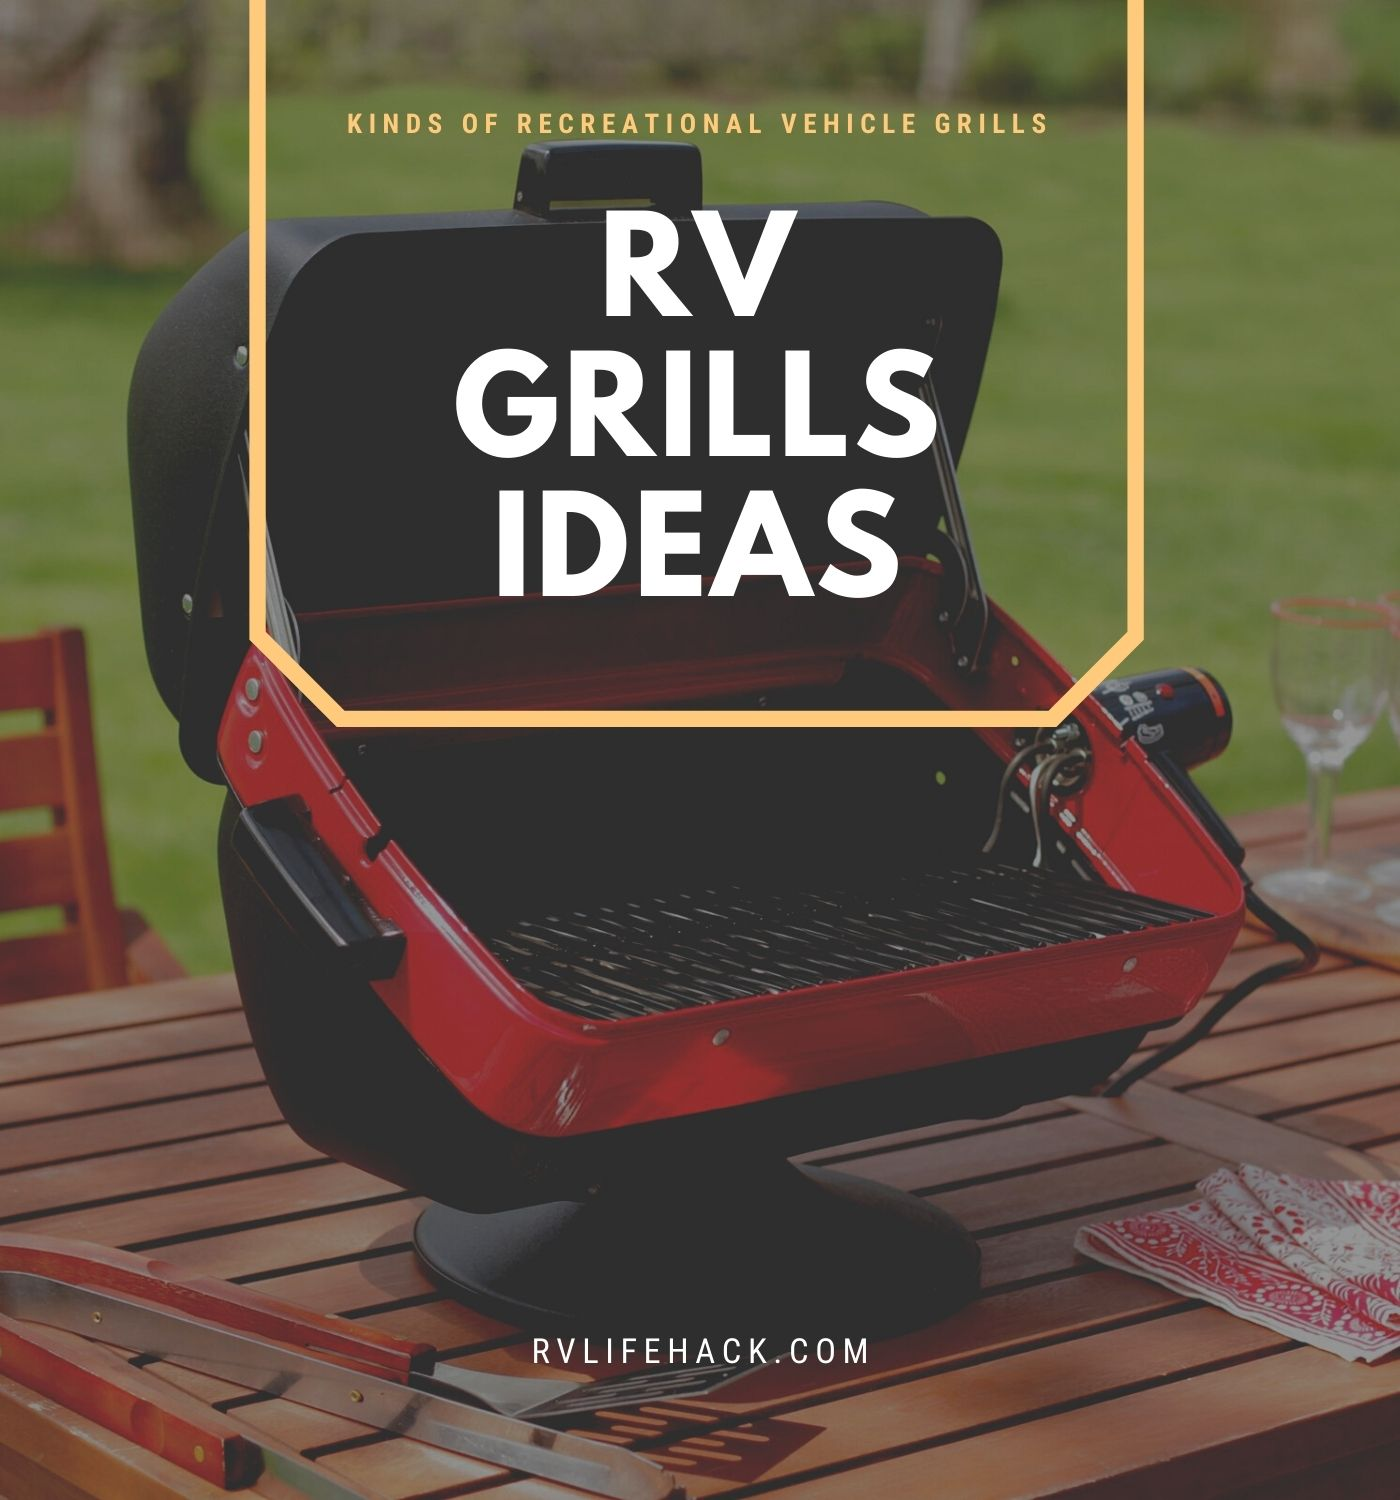 Best RV Grill 2021 | Kinds Of Recreational Vehicle Grills